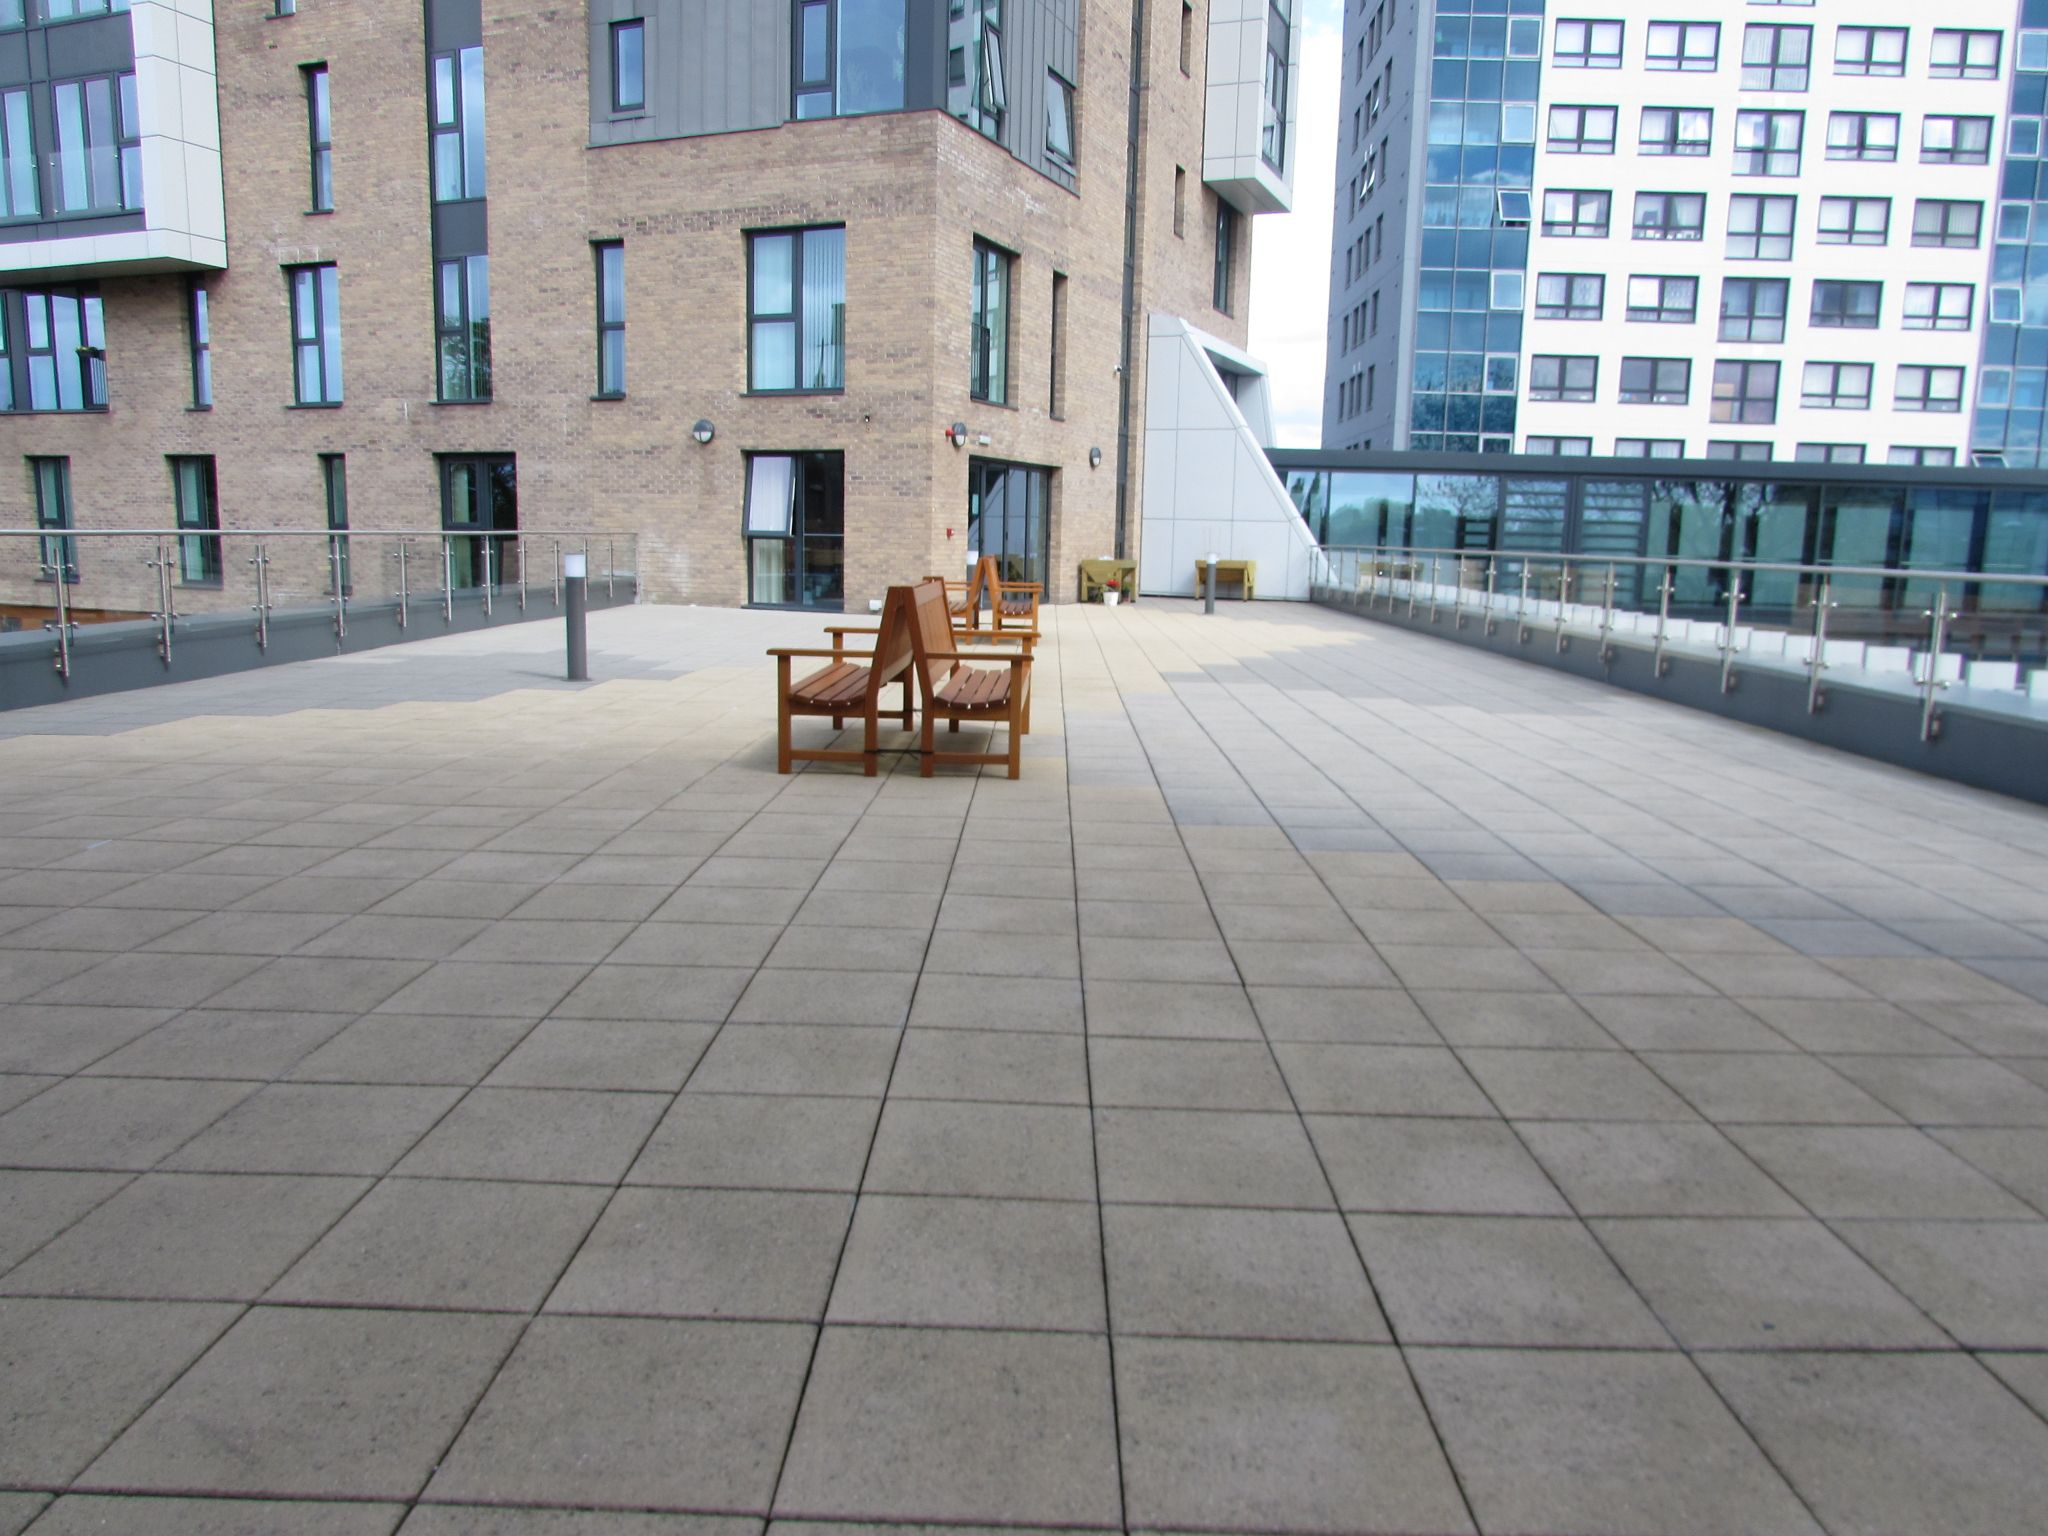 2 Bedroom Apartment Flat/apartment For Sale - Roof top garden/patio